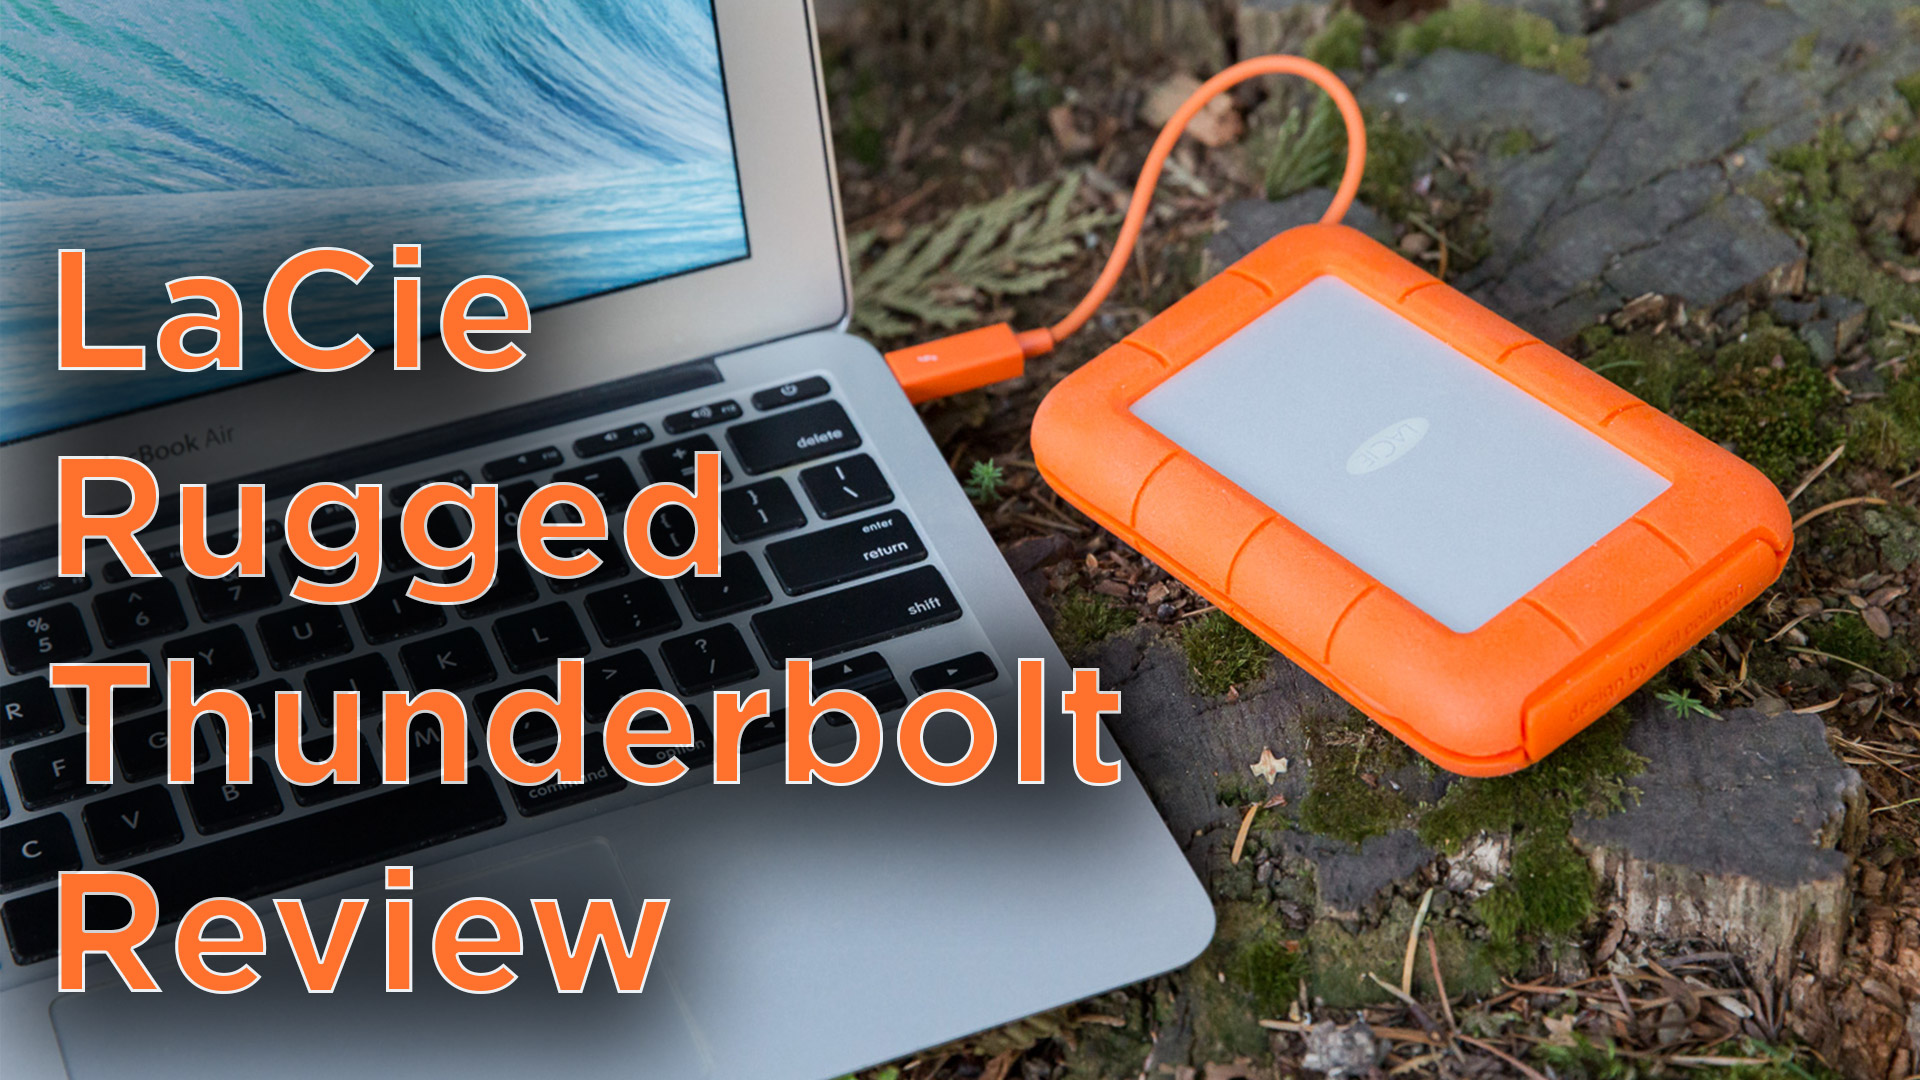 LaCie Rugged Thunderbolt Review 1